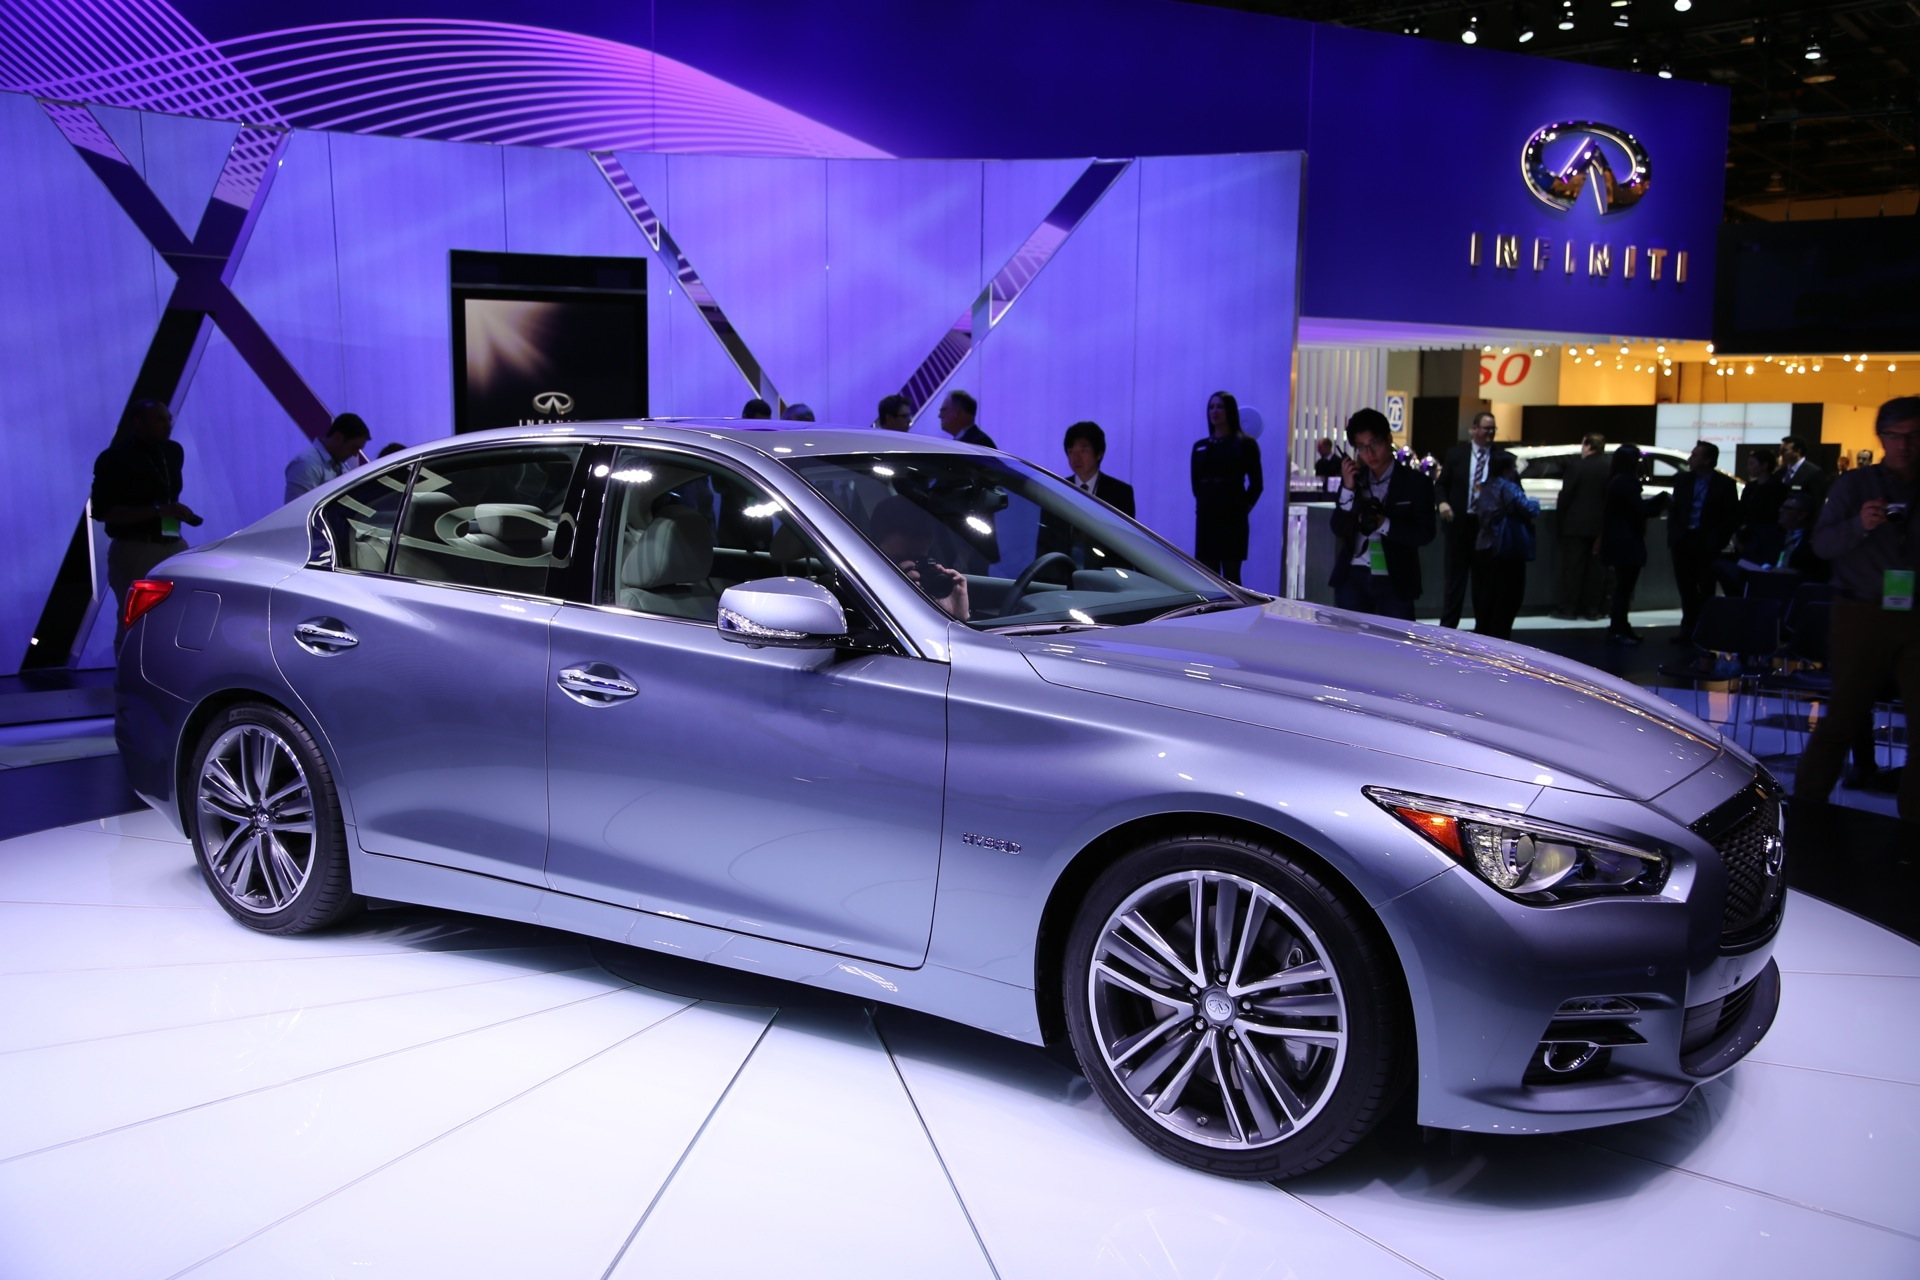 q50 infiniti hybrid detroit cylinder under diesel developments hood advanced auto debuts